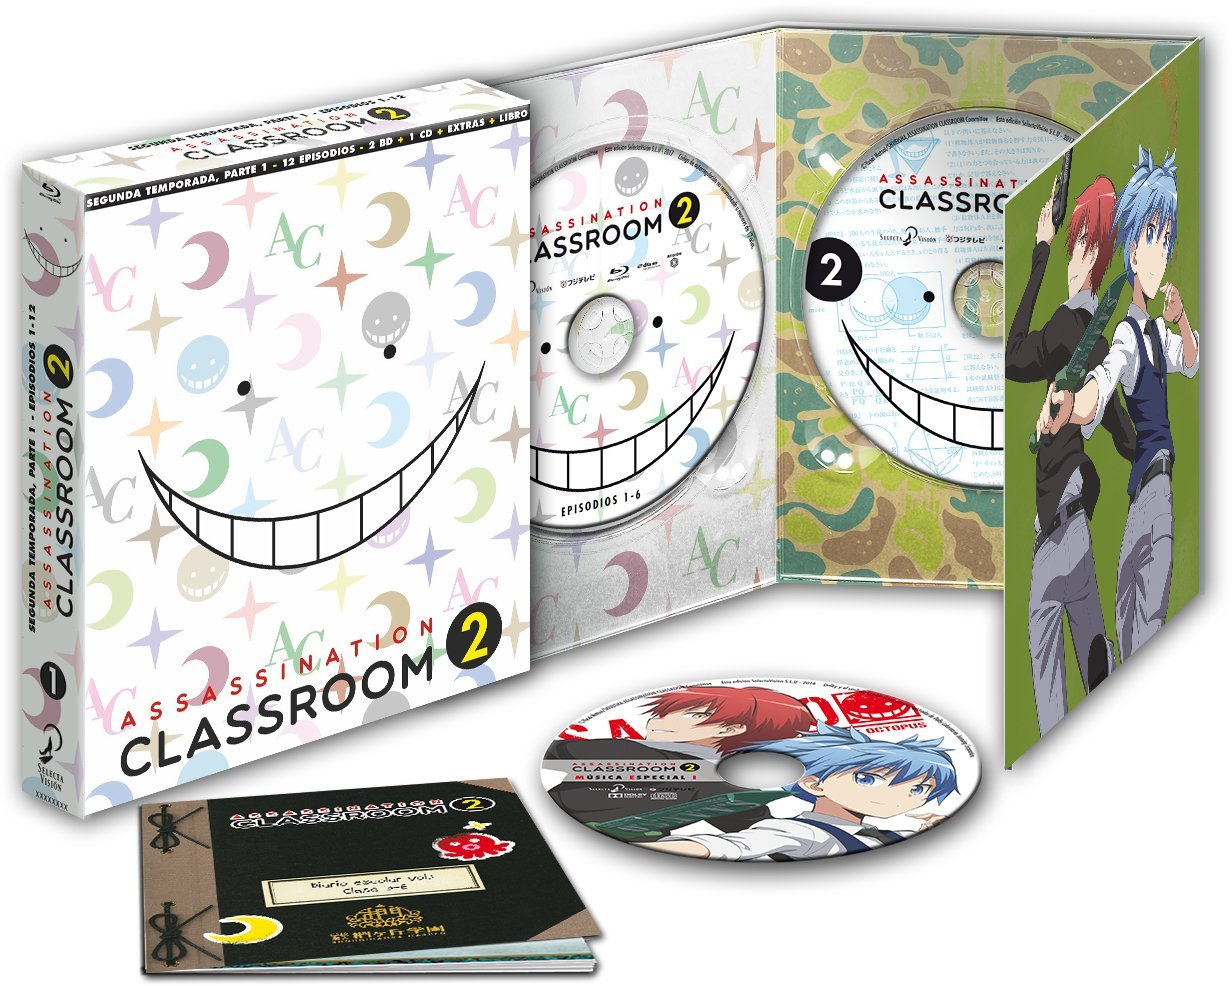 Assassination Classroom Temporada 2 Parte 1 BD